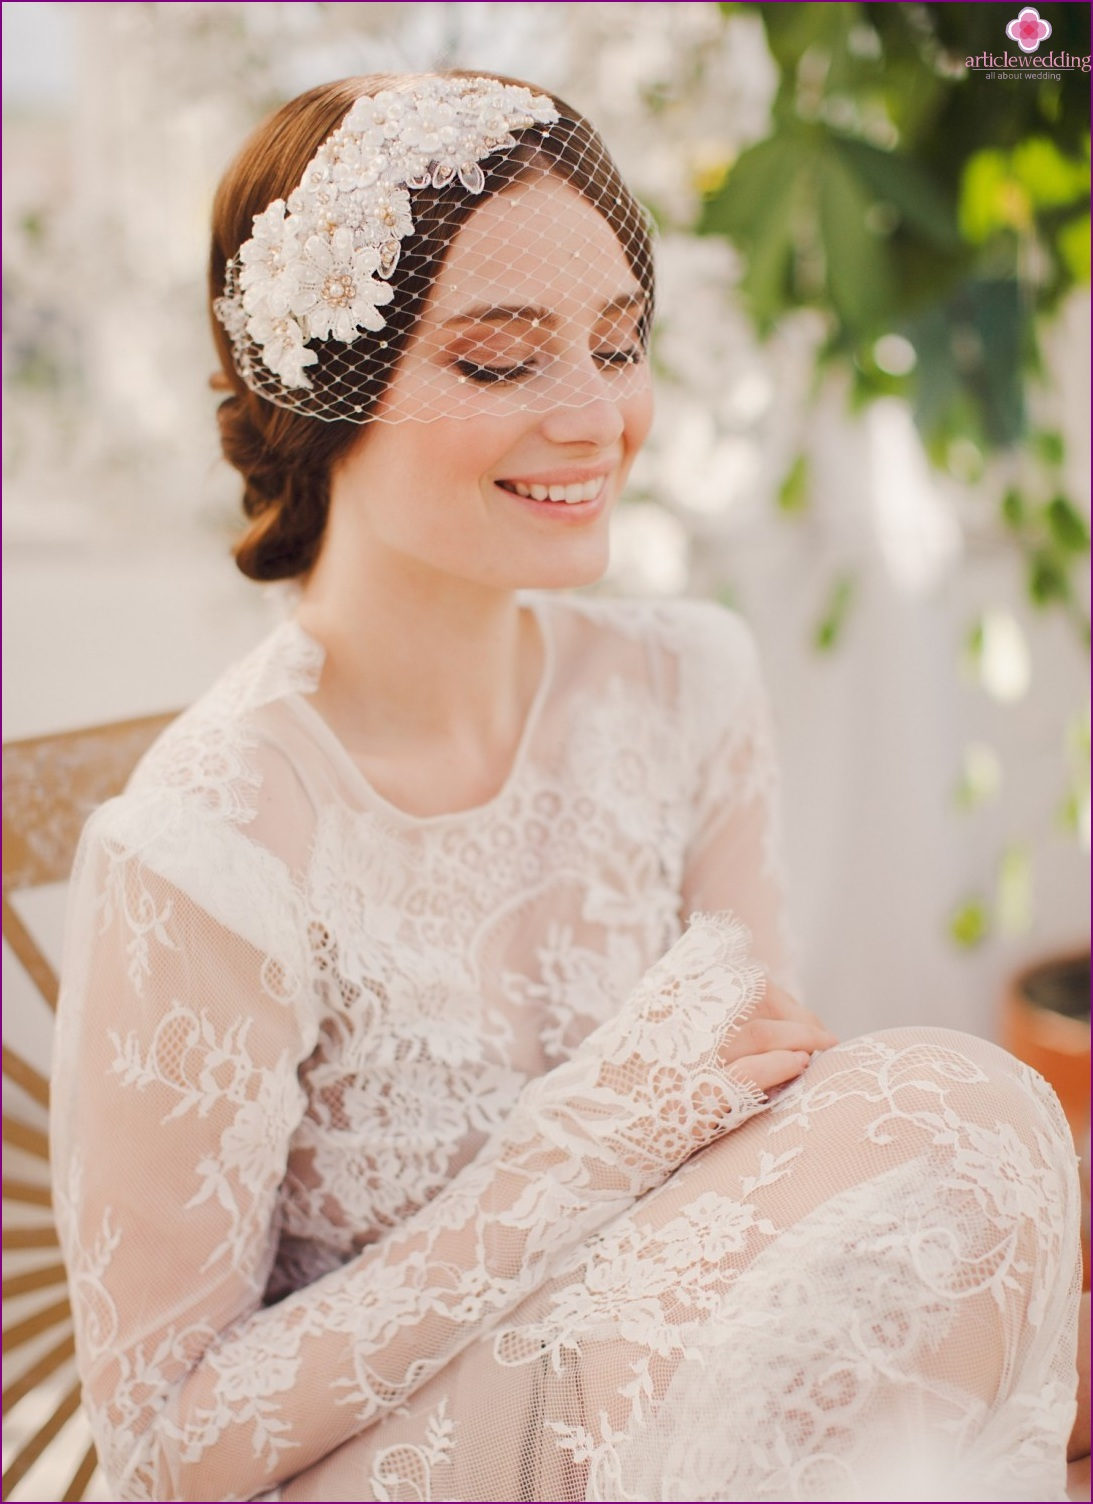 Veil - a stylish accessory for the bride